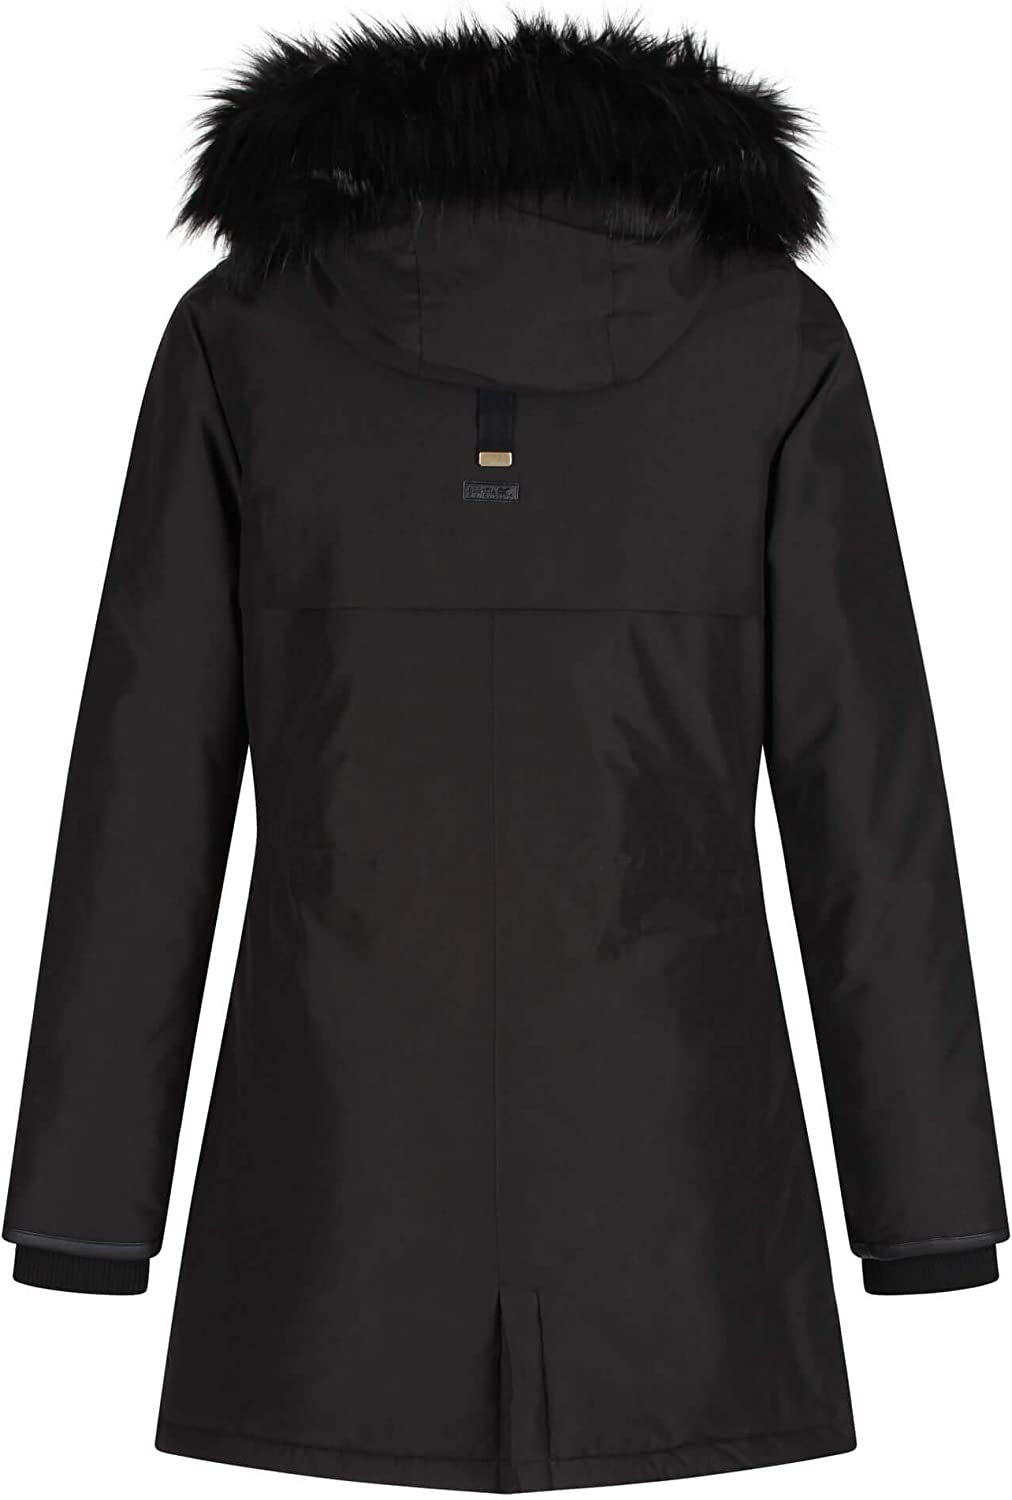 Regatta Womens Safiyya Waterproof /& Breathable Down-touch Insulated Faux Fur Hooded Winter Jacket